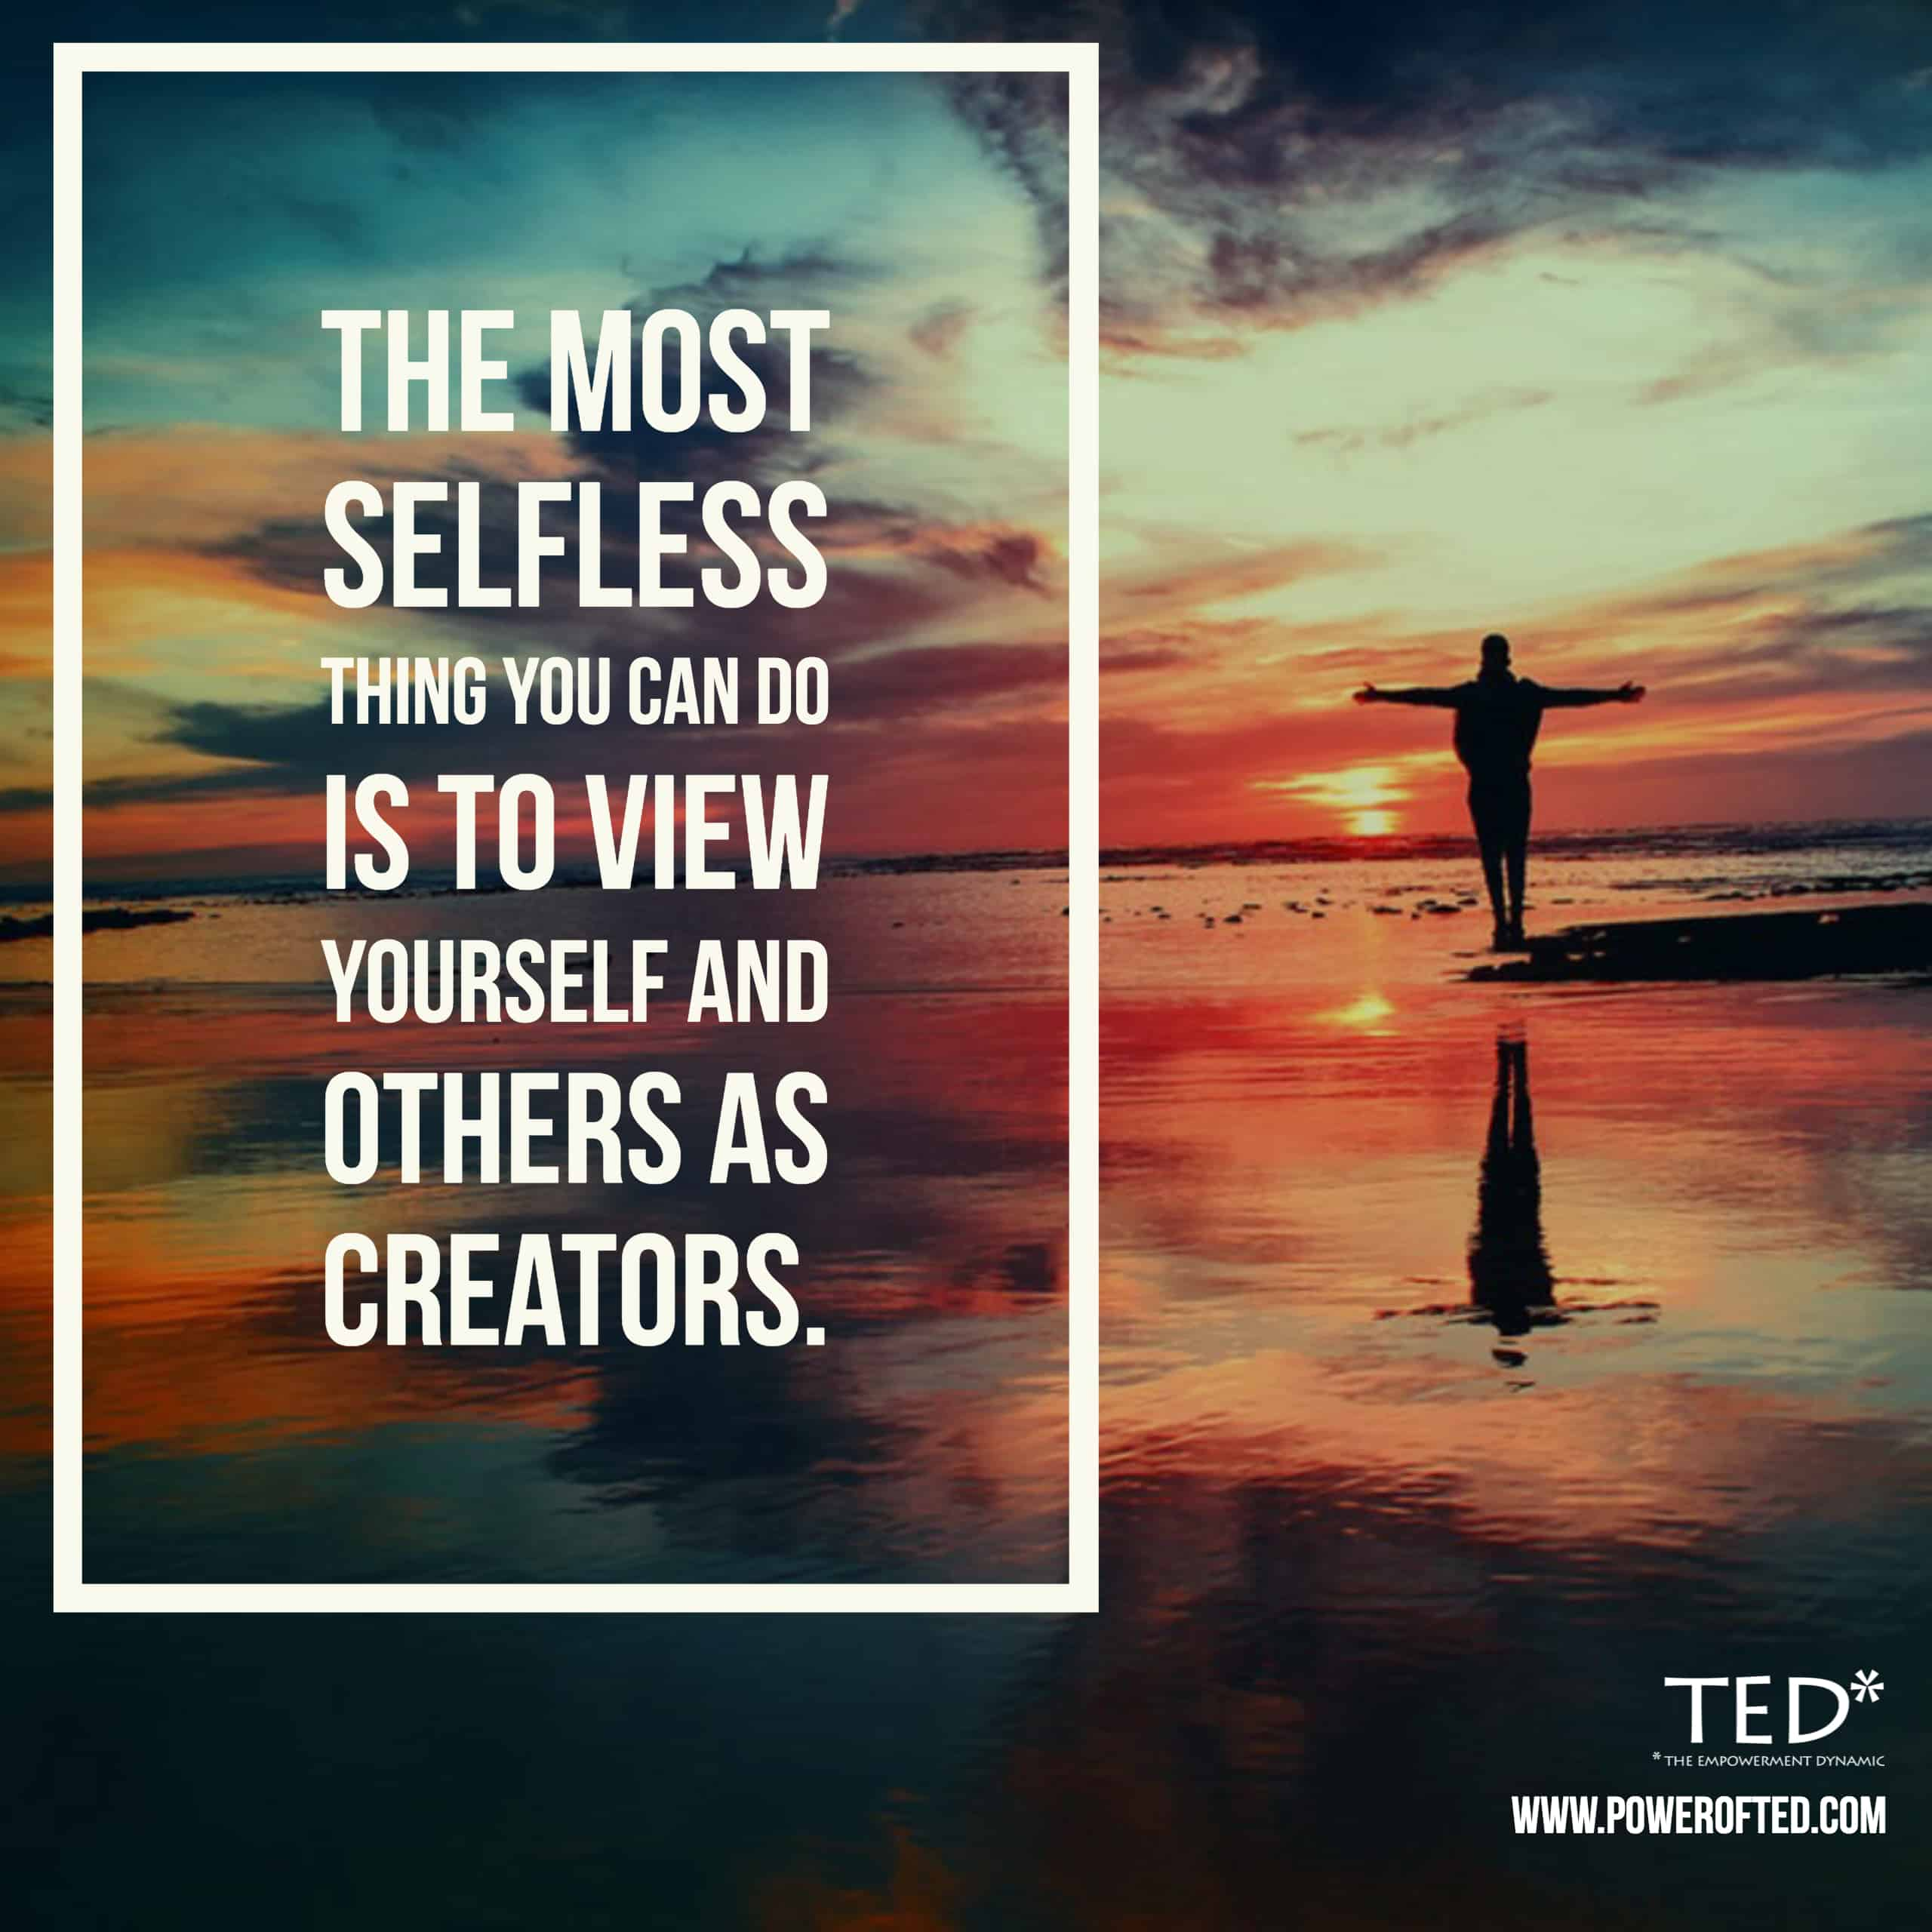 The most selfless thing you can do is view yourself and others as Creators.